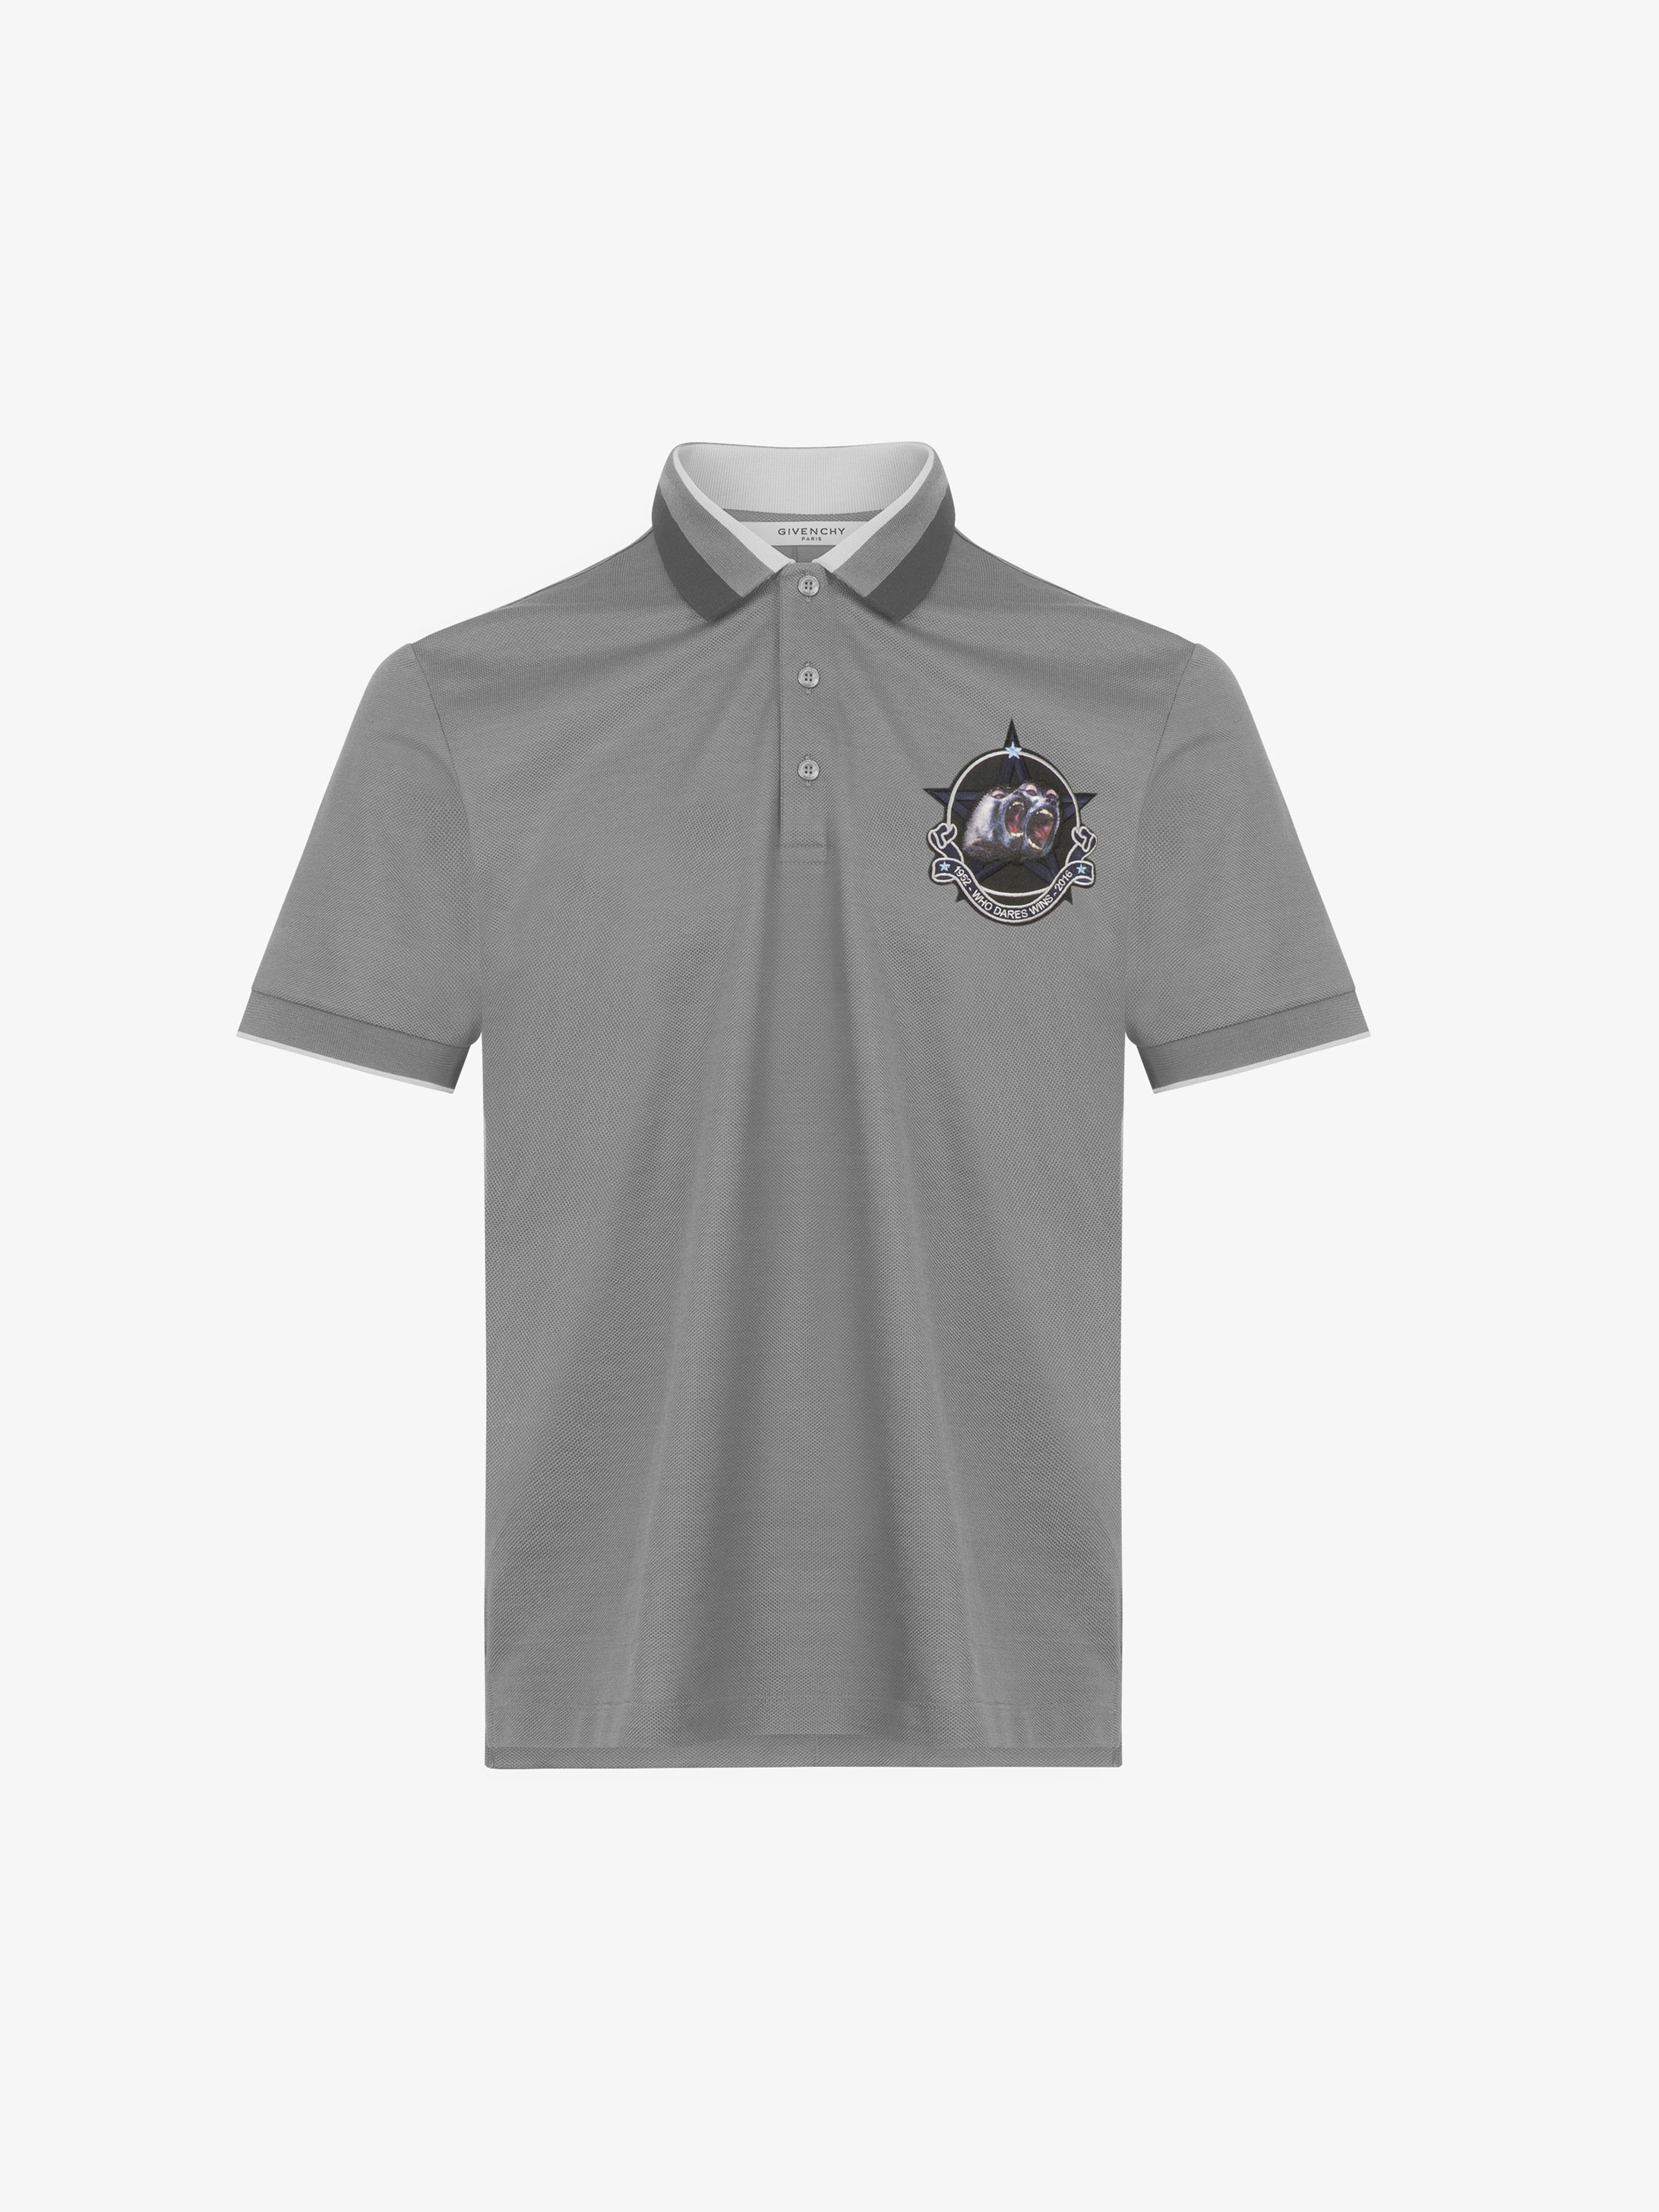 Monkey patch polo shirt in cotton